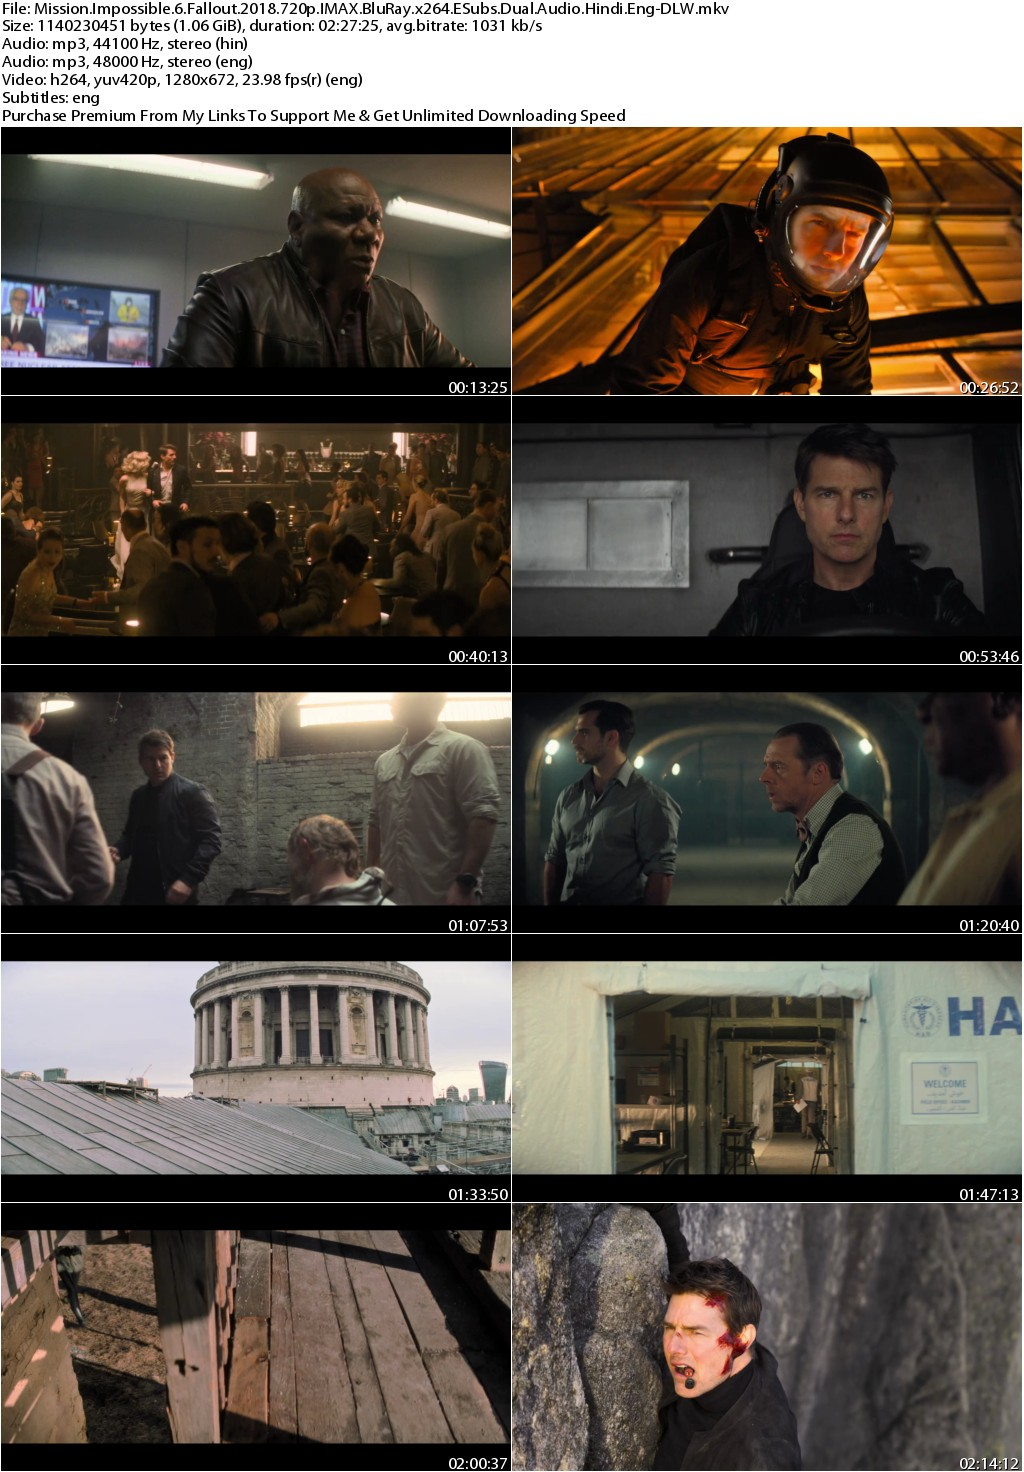 Mission Impossible Fallout (2018) 720p IMAX BluRay x264 ESubs Dual Audio Hindi Eng-DLW